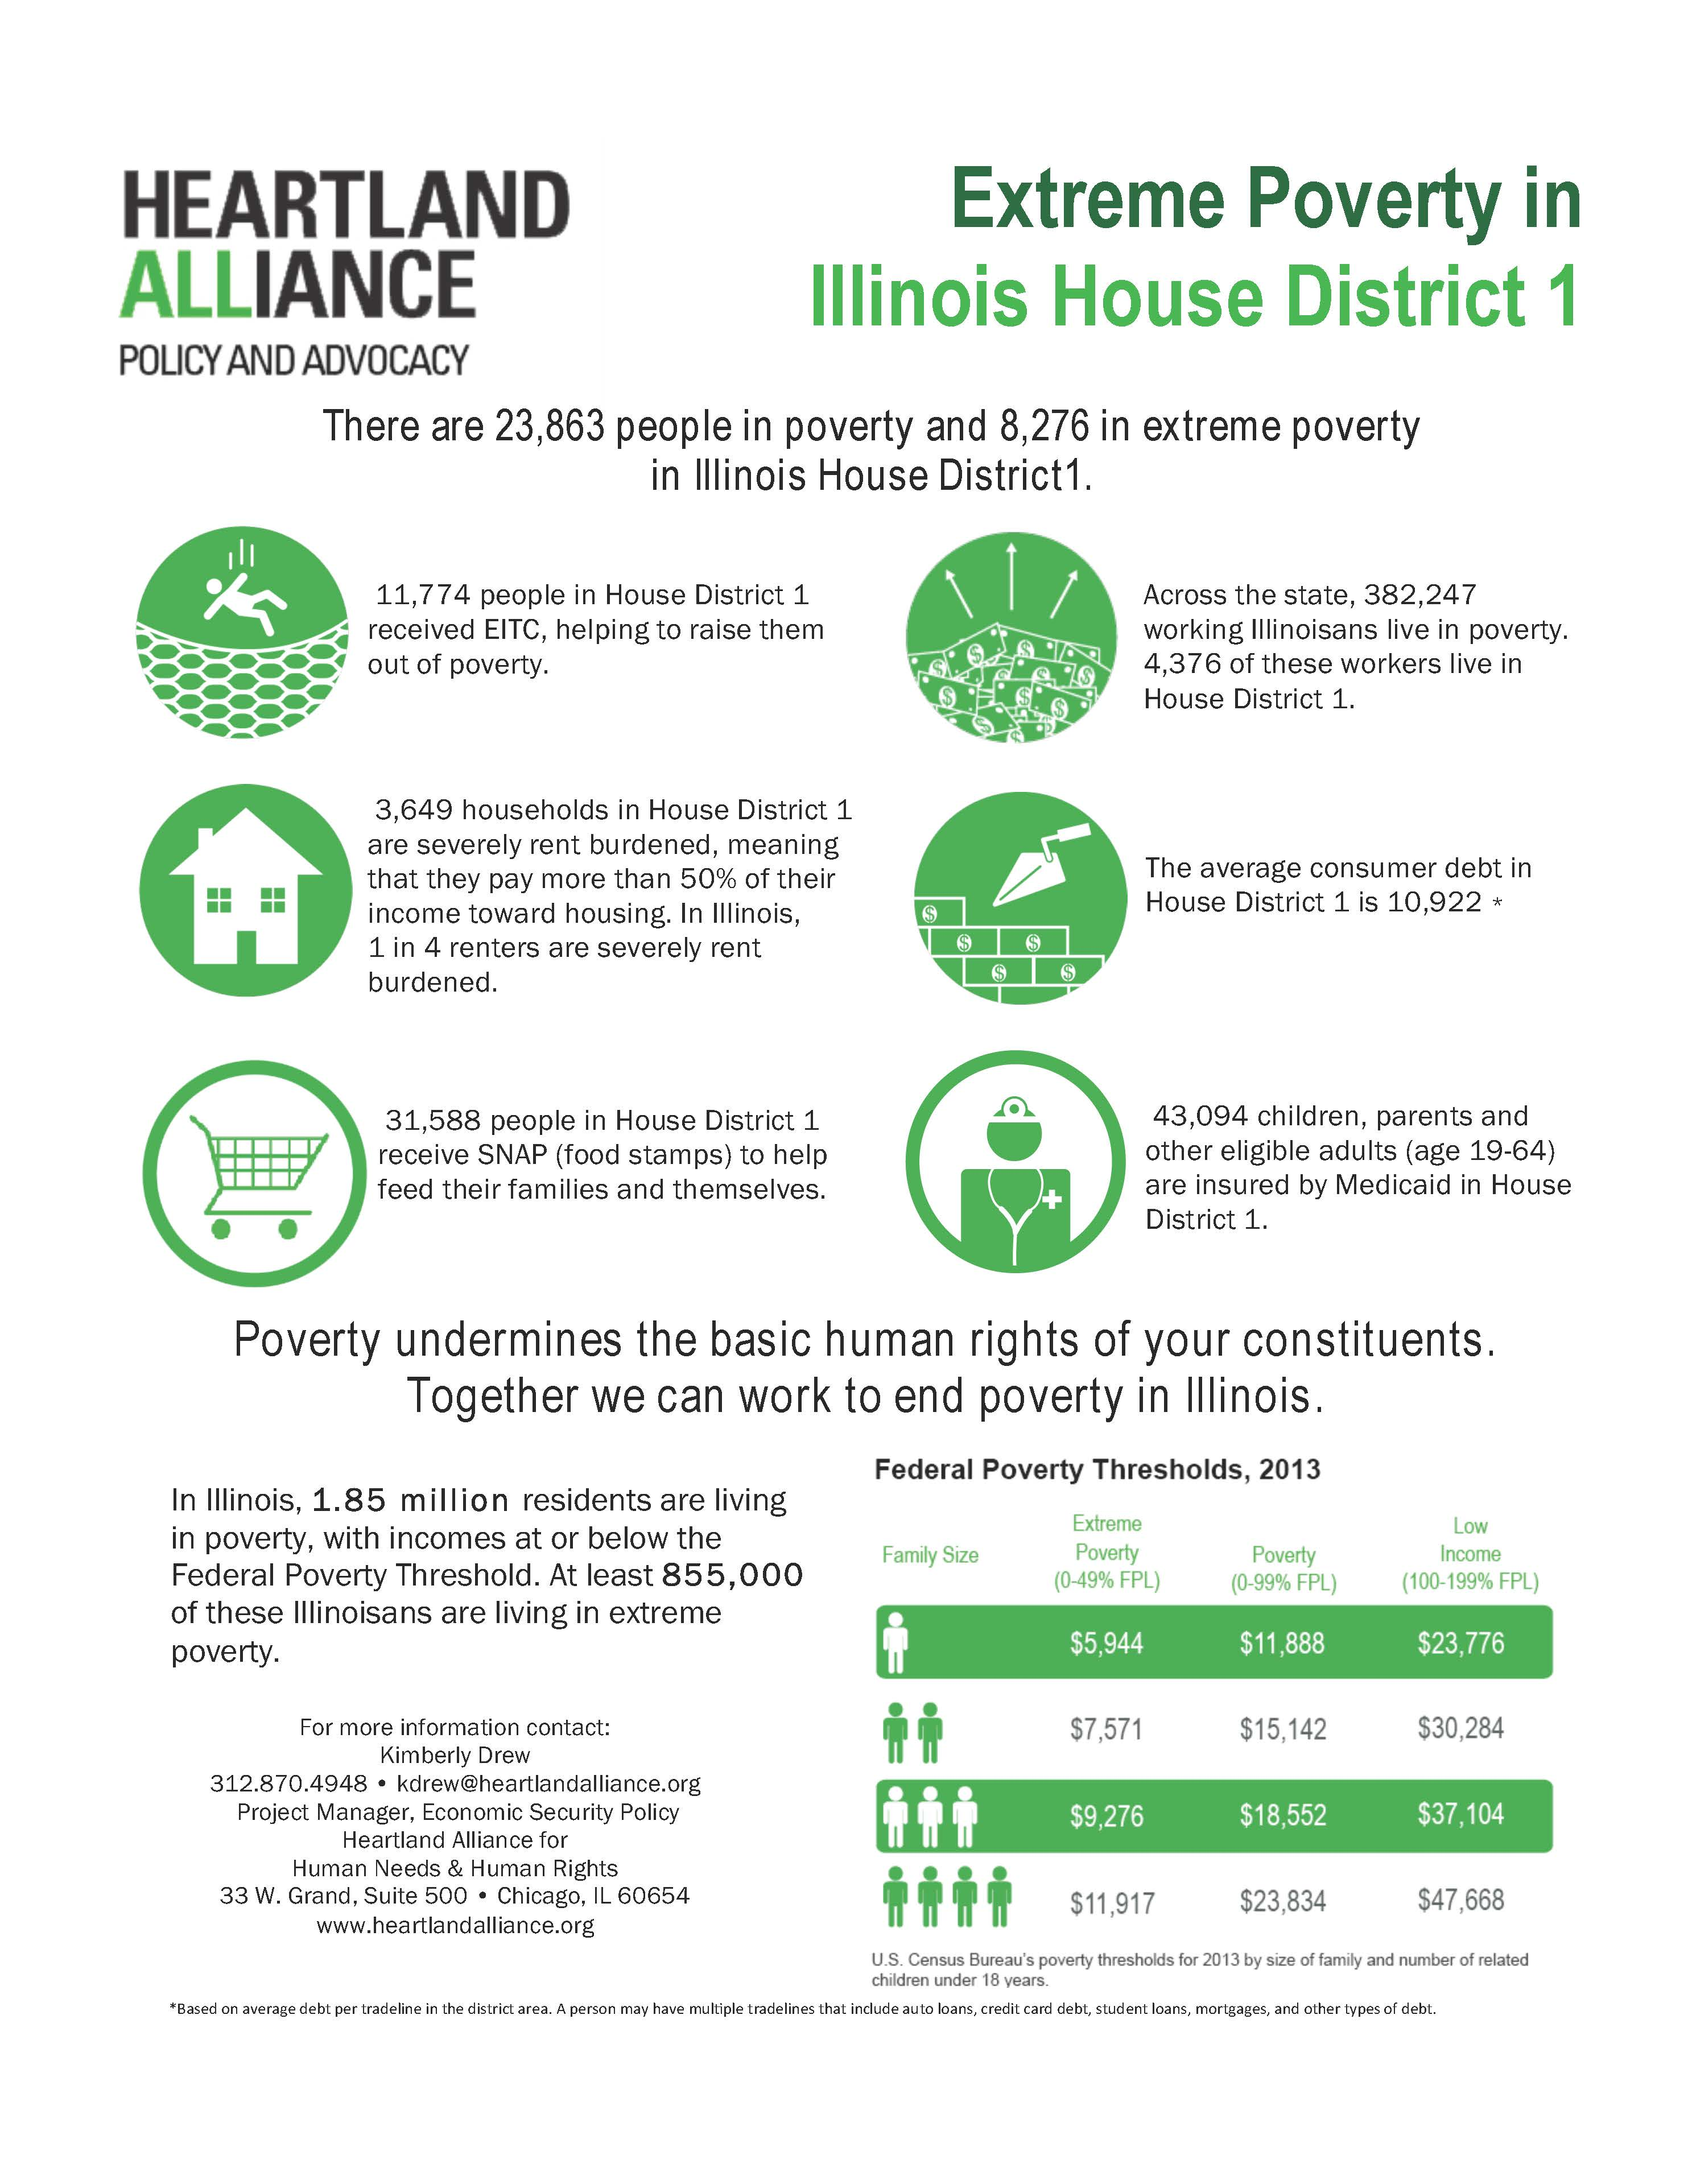 house district 1 poverty fact sheet 2015